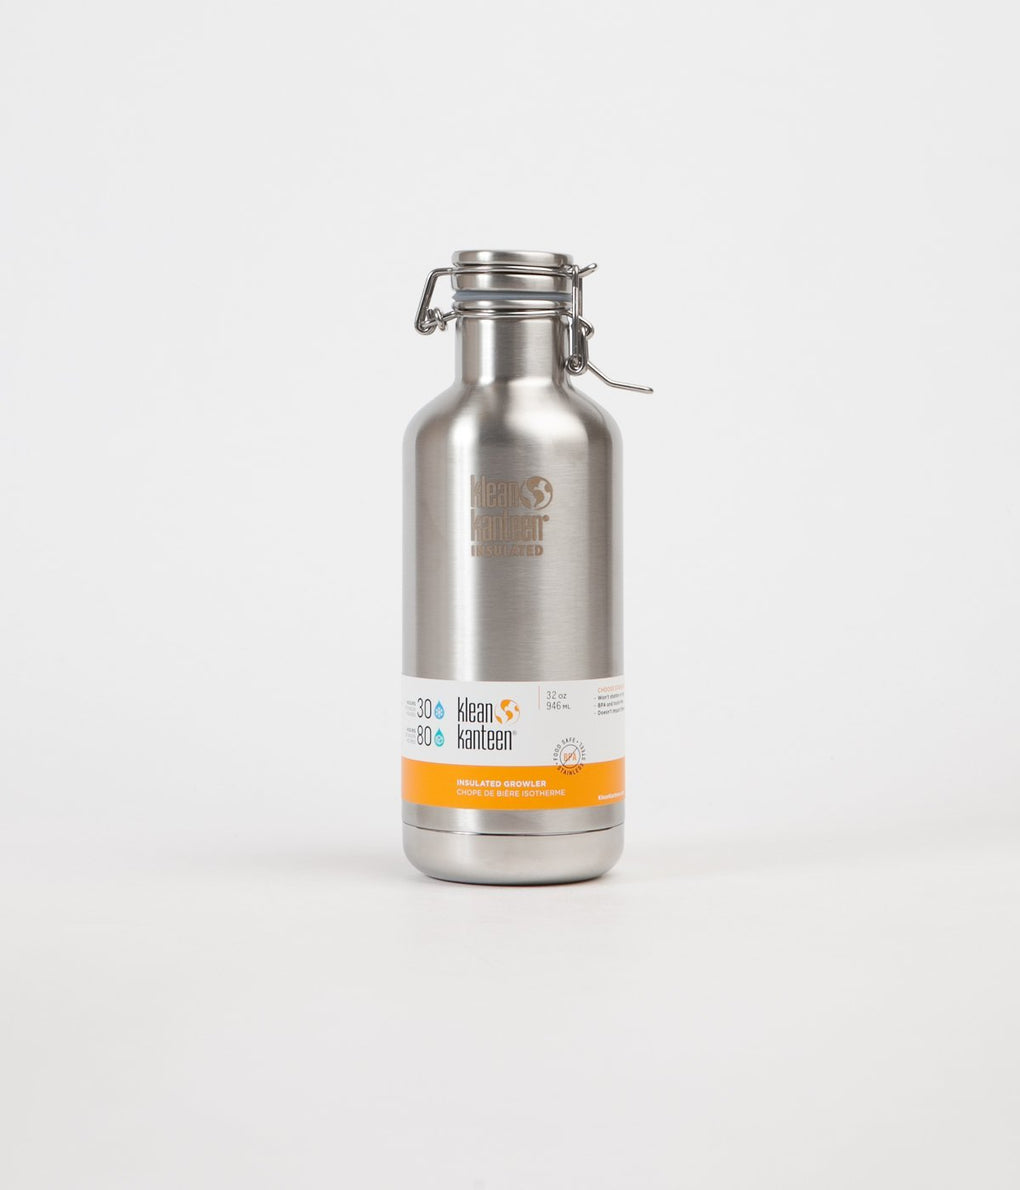 Klean Kanteen Growler 946ml Insulated Flask - Brushed Stainless